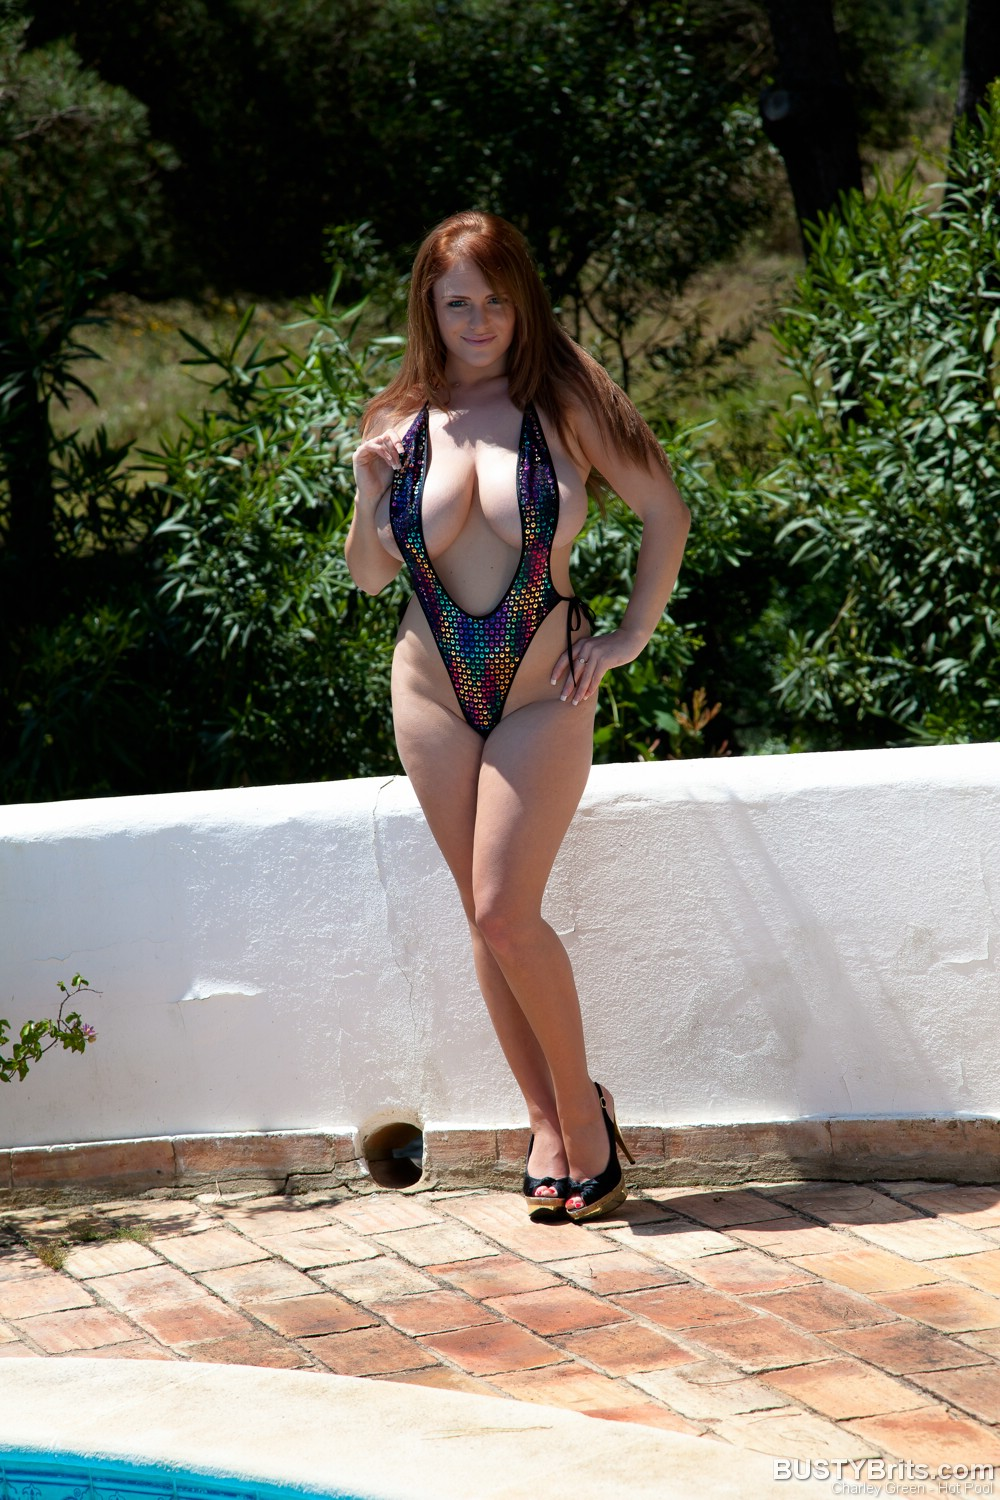 Click here to see more Charley Green @ Busty Brits